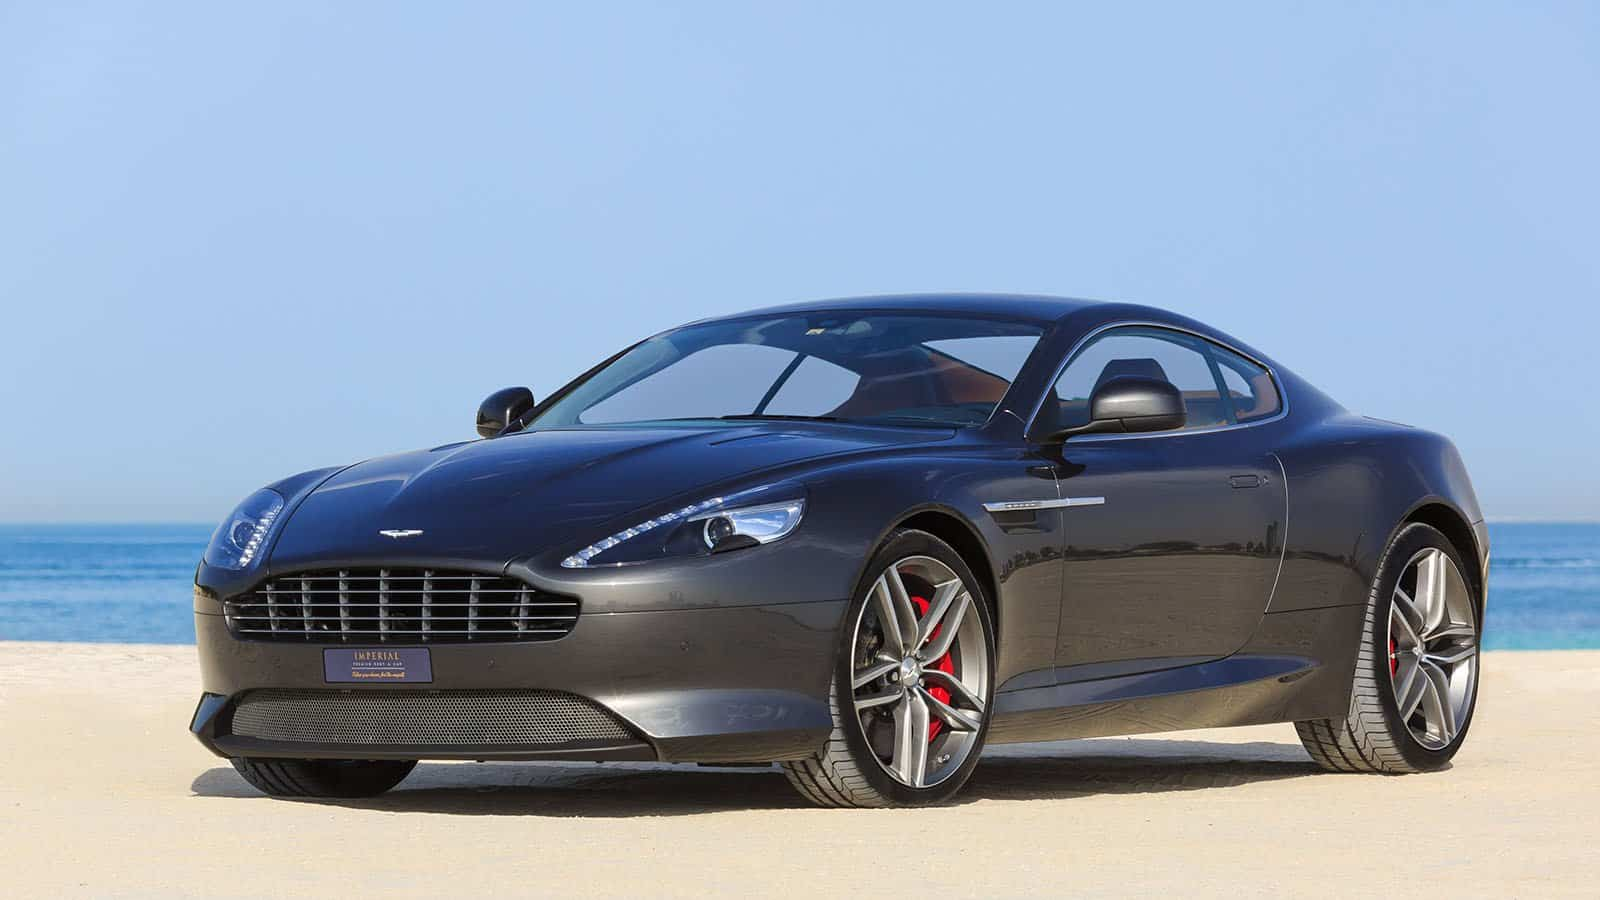 Aston Martin DB9 Rent Dubai | Imperial Premium Rent a Car on 1968 aston dbs, aston db, bentley dbs, citroen dbs, aston dbs interior, aston martin's hot, toyota dbs, aston one-77, aston v8 vantage,